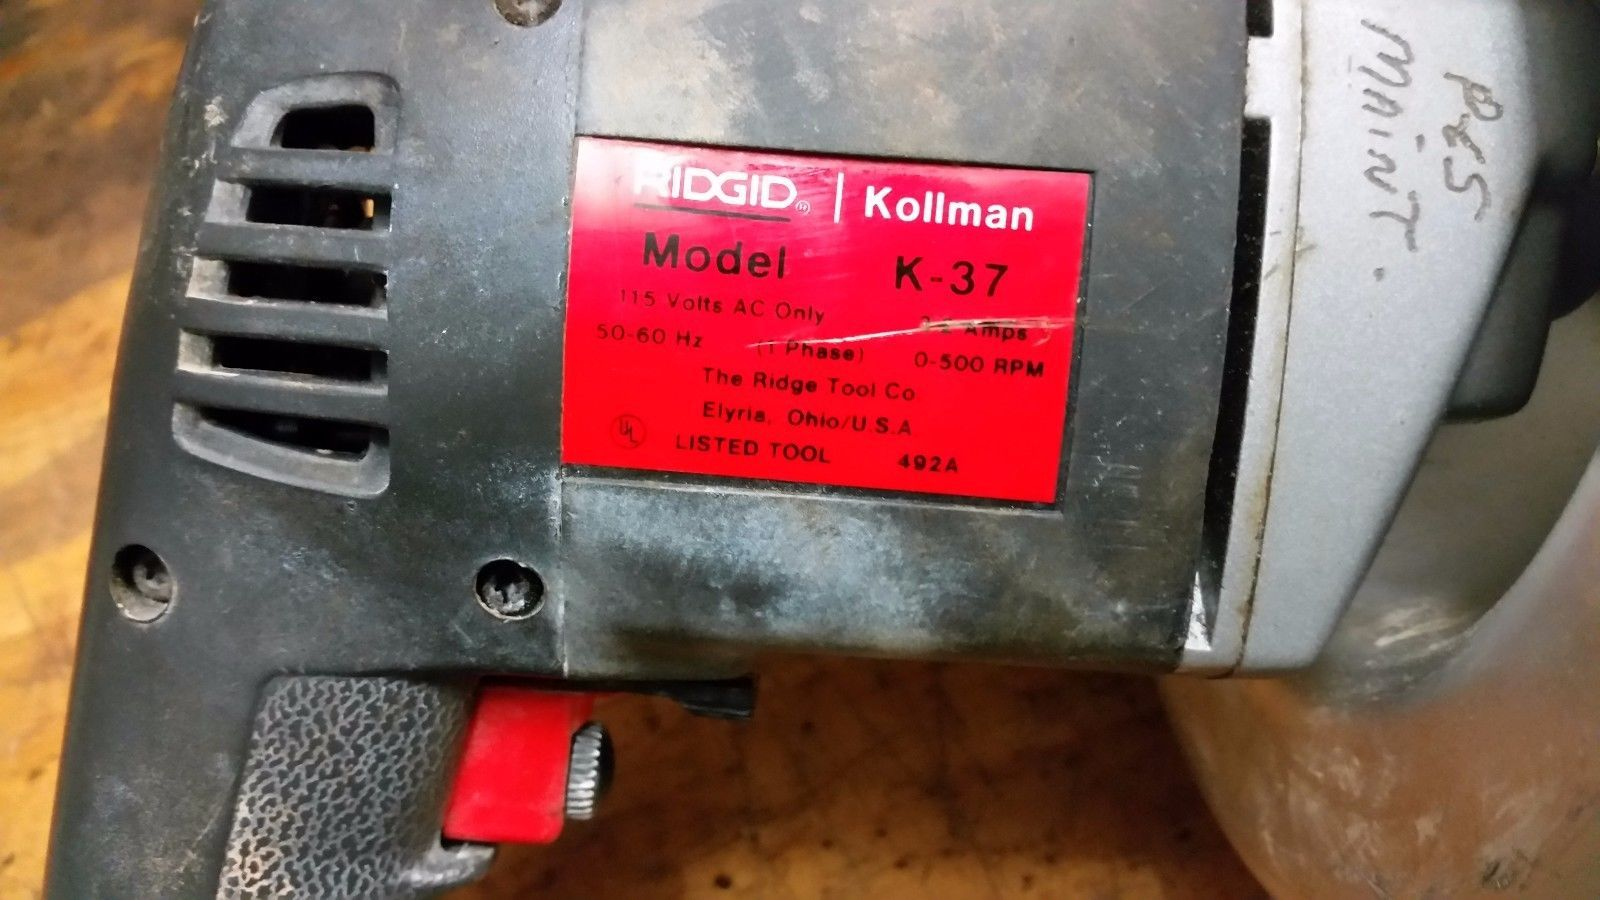 Ridgid Kollman Pipe And Drain Cleaning Model K-37 with 25 ft. cable.